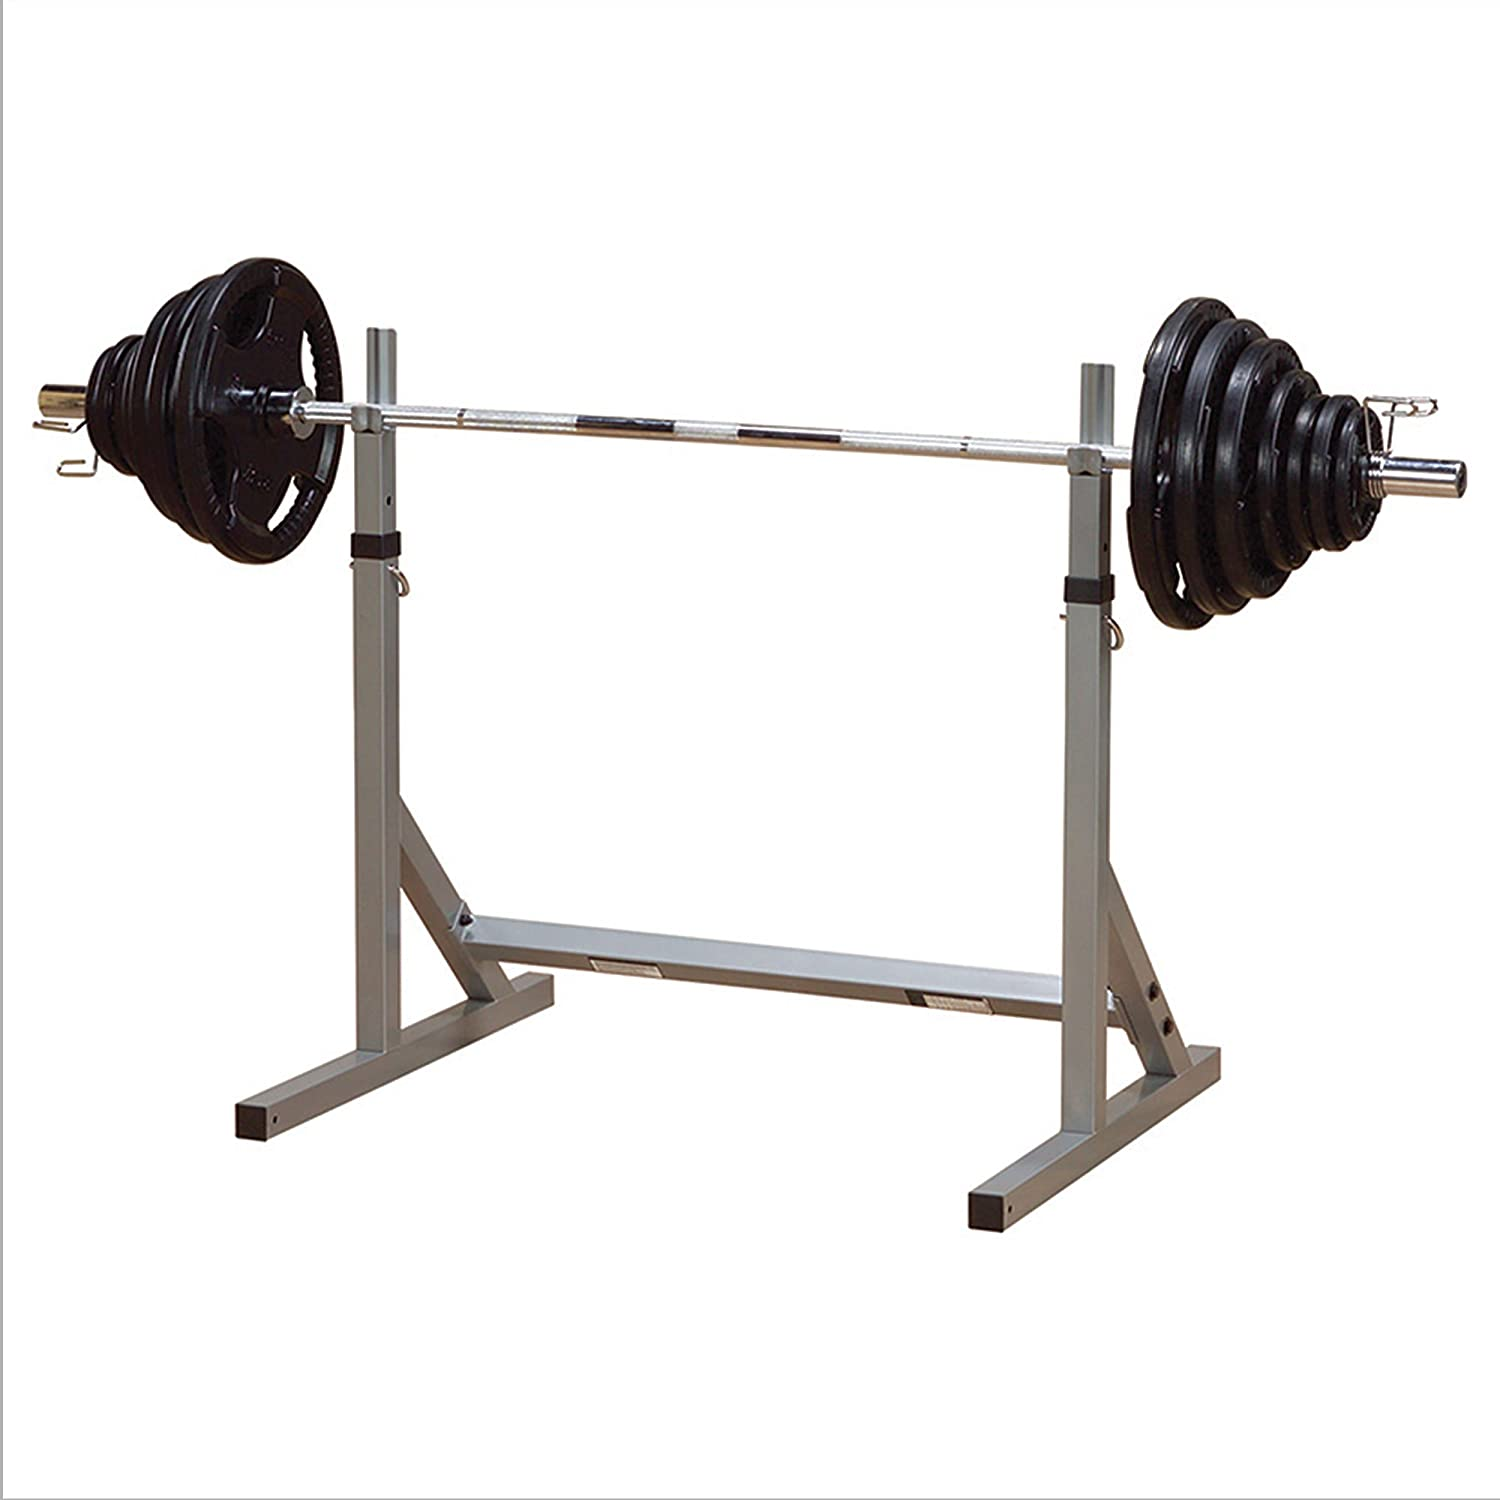 Ordinary Squat Rack Bench Part - 6: Amazon.com